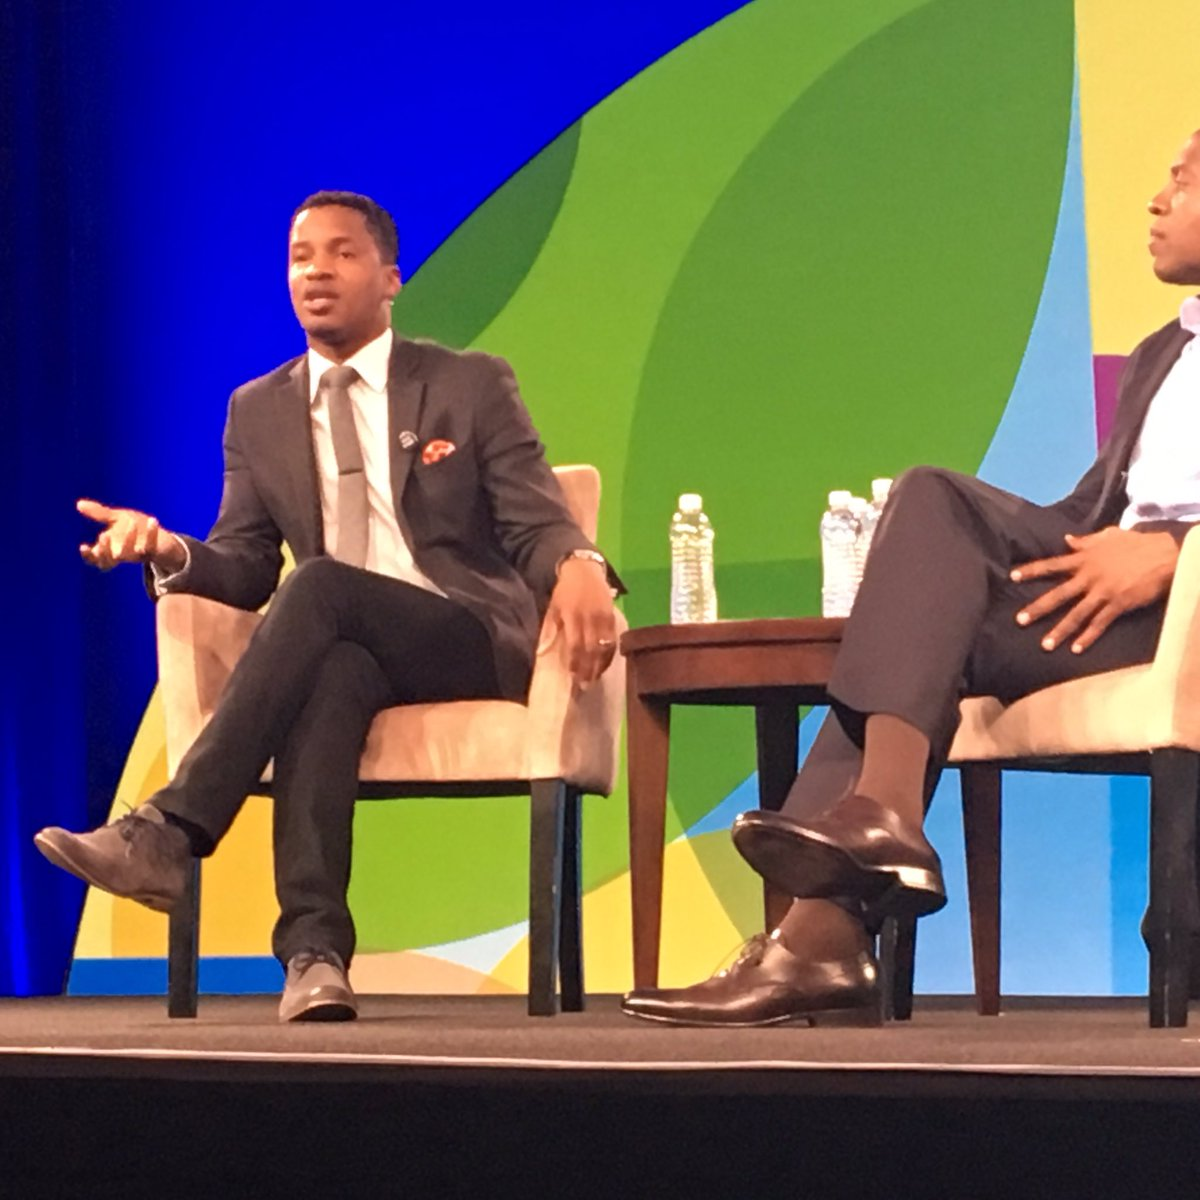 """When people tell you it's impossible, that's when you know you're on the right track"" - @NateParker #nsvfsummit https://t.co/kOb8LVy31v"